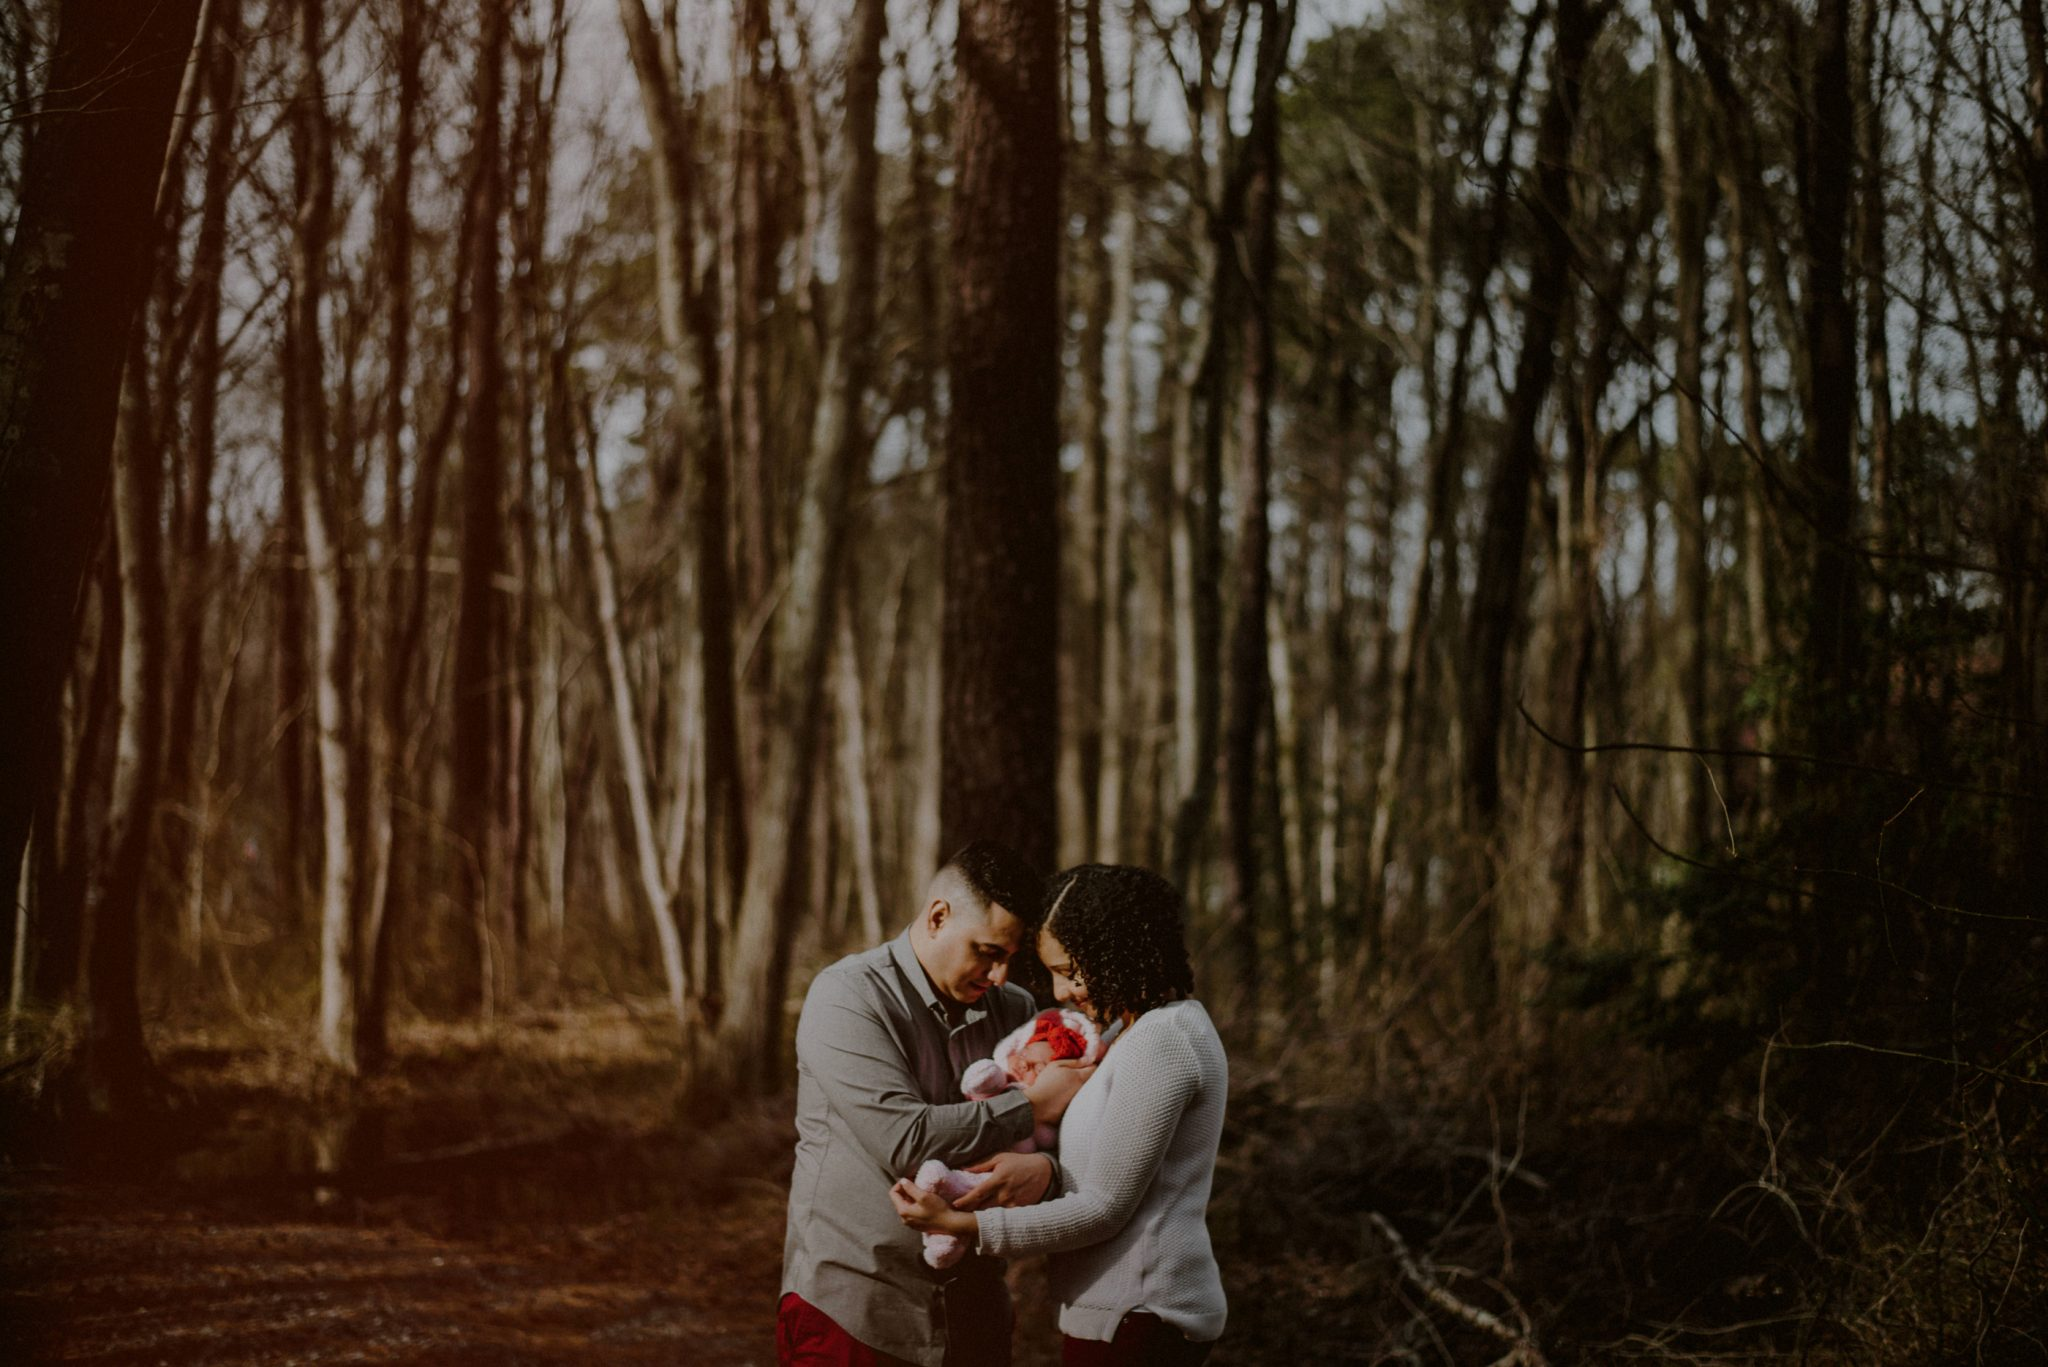 rustic outdoor family portrait in the woods with newborn surrounded by bare winter trees